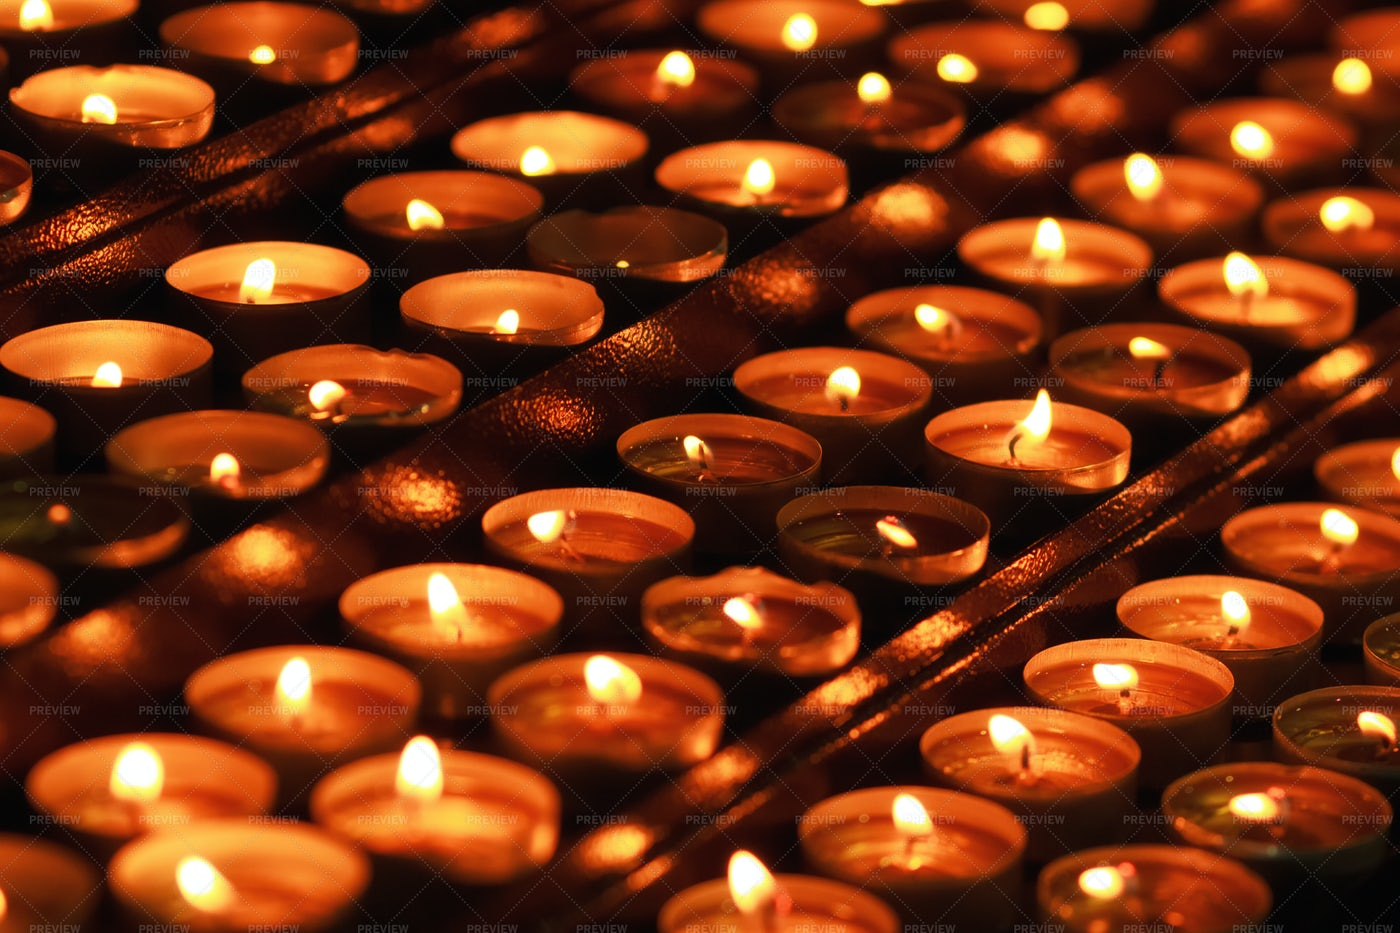 Many Candles In Darkness: Stock Photos